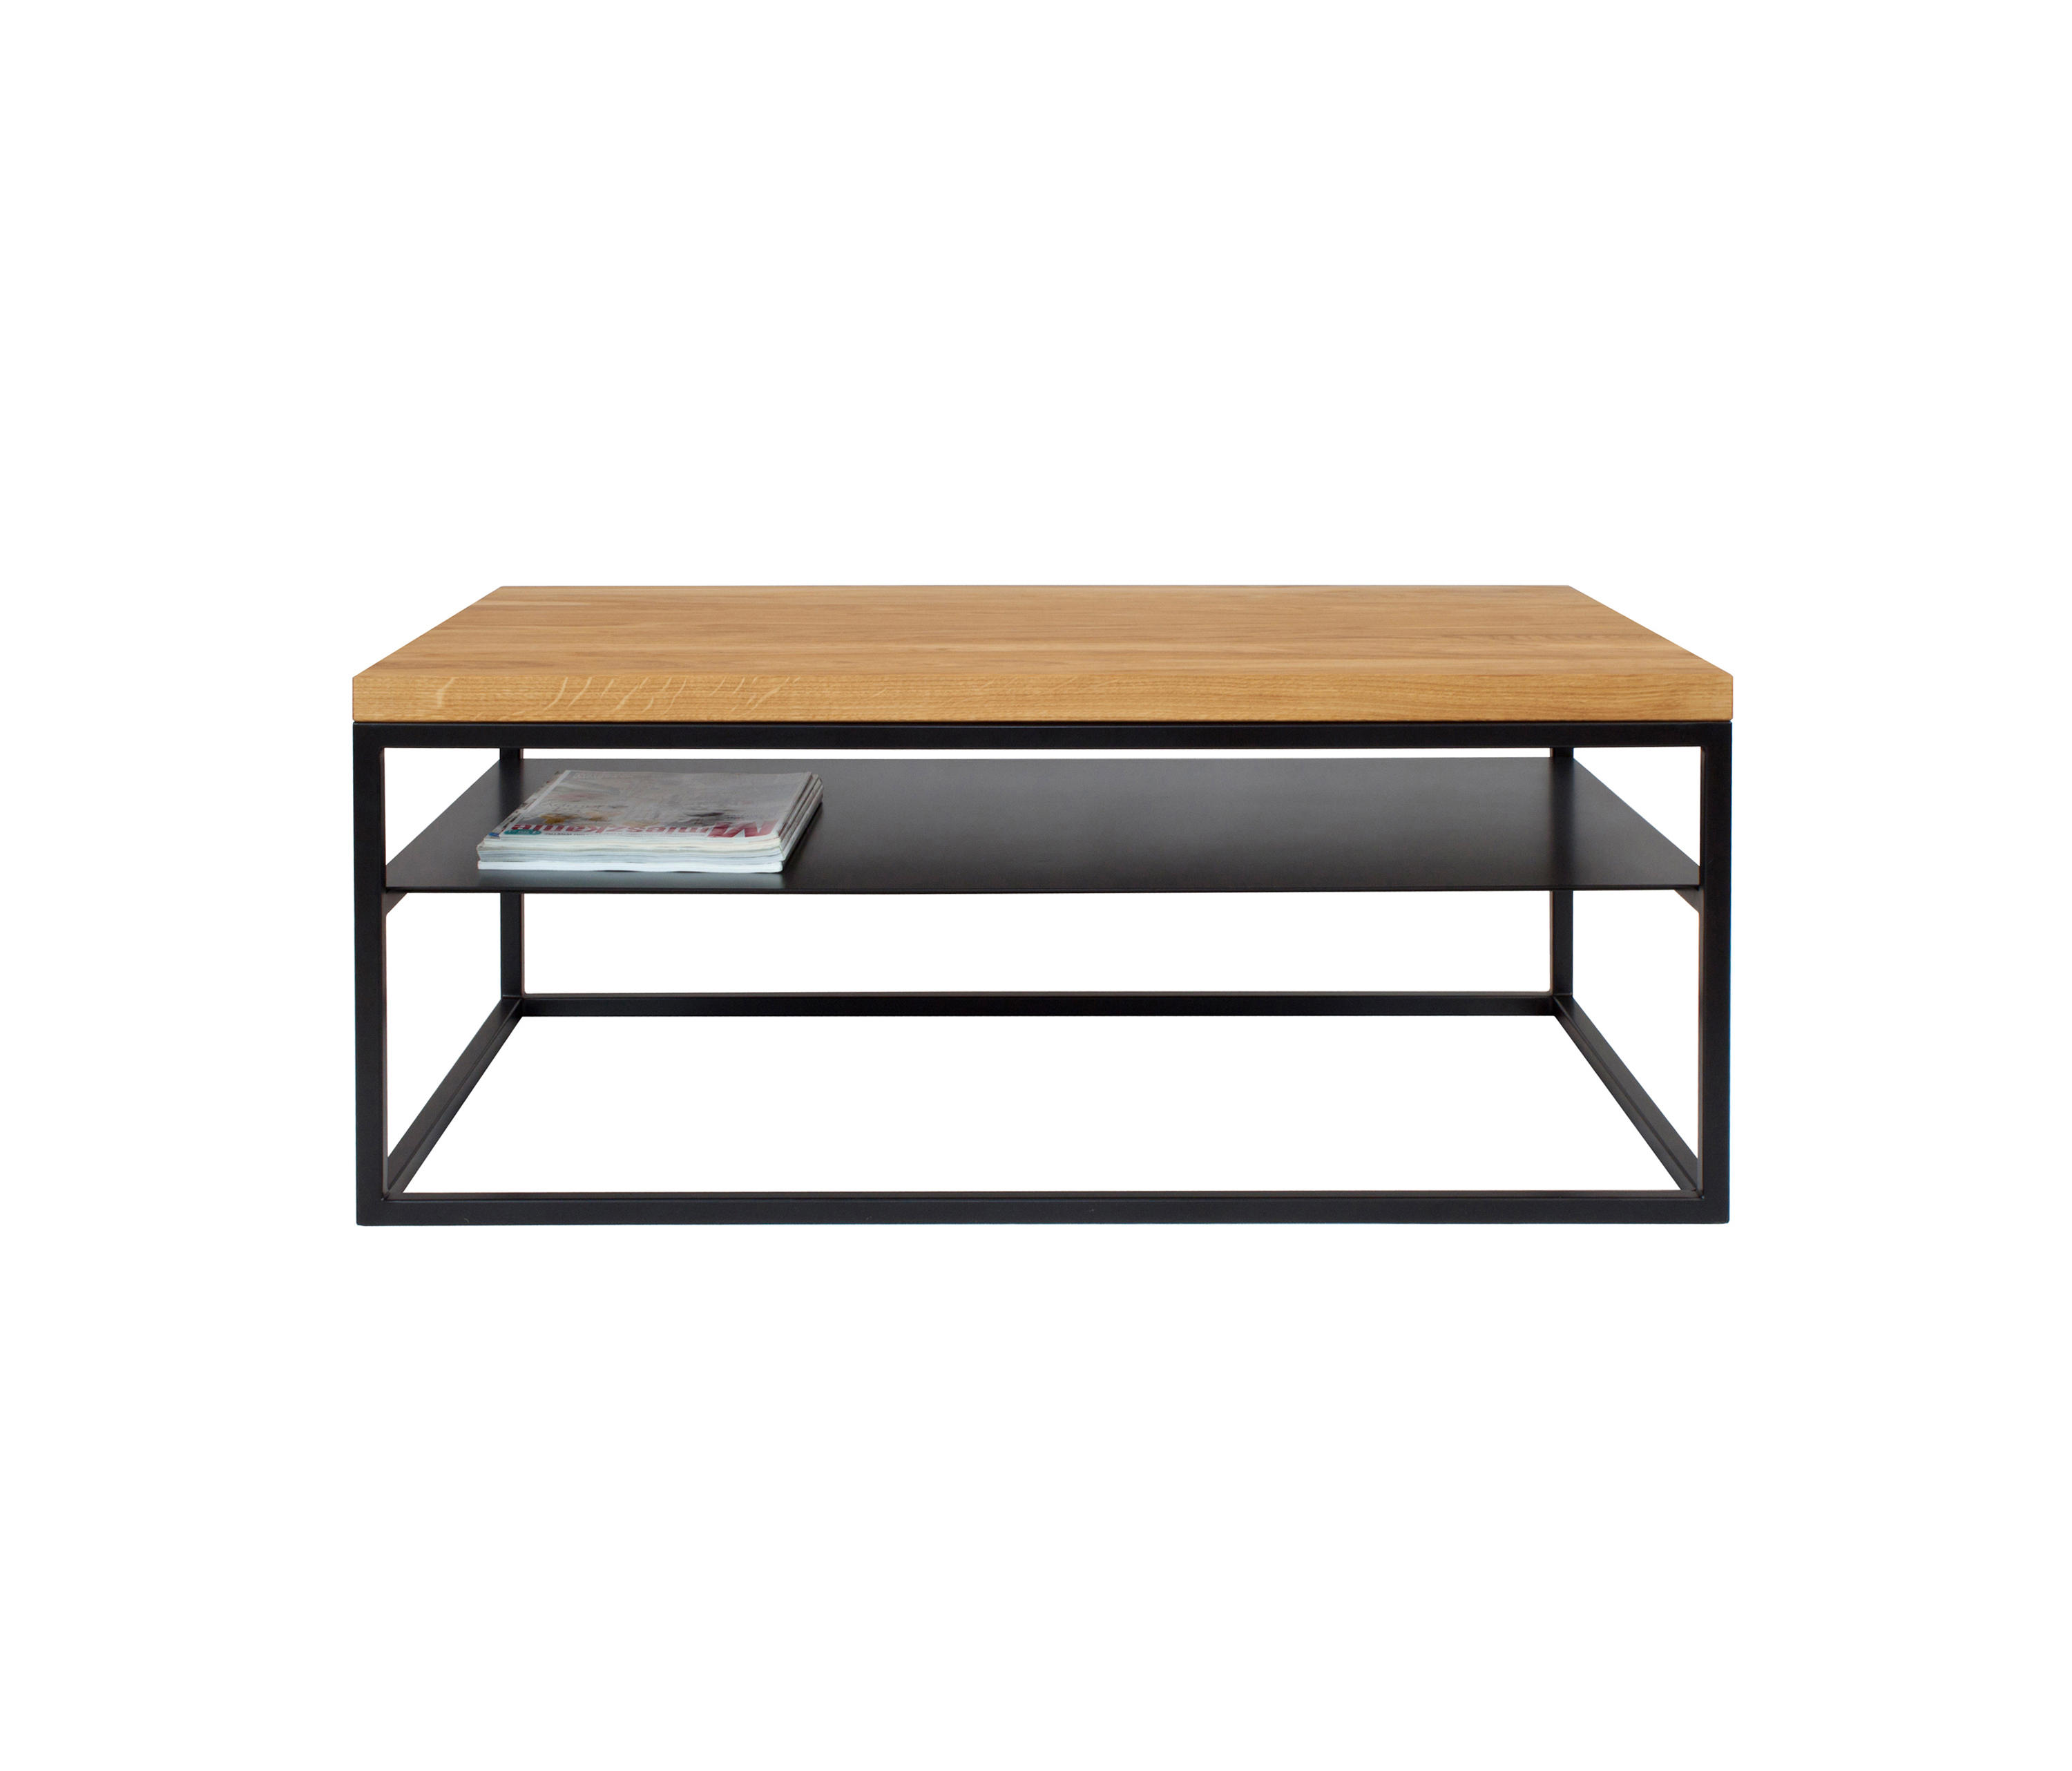 MALMO MIT TABLAR | GROß - Coffee tables from take me HOME | Architonic